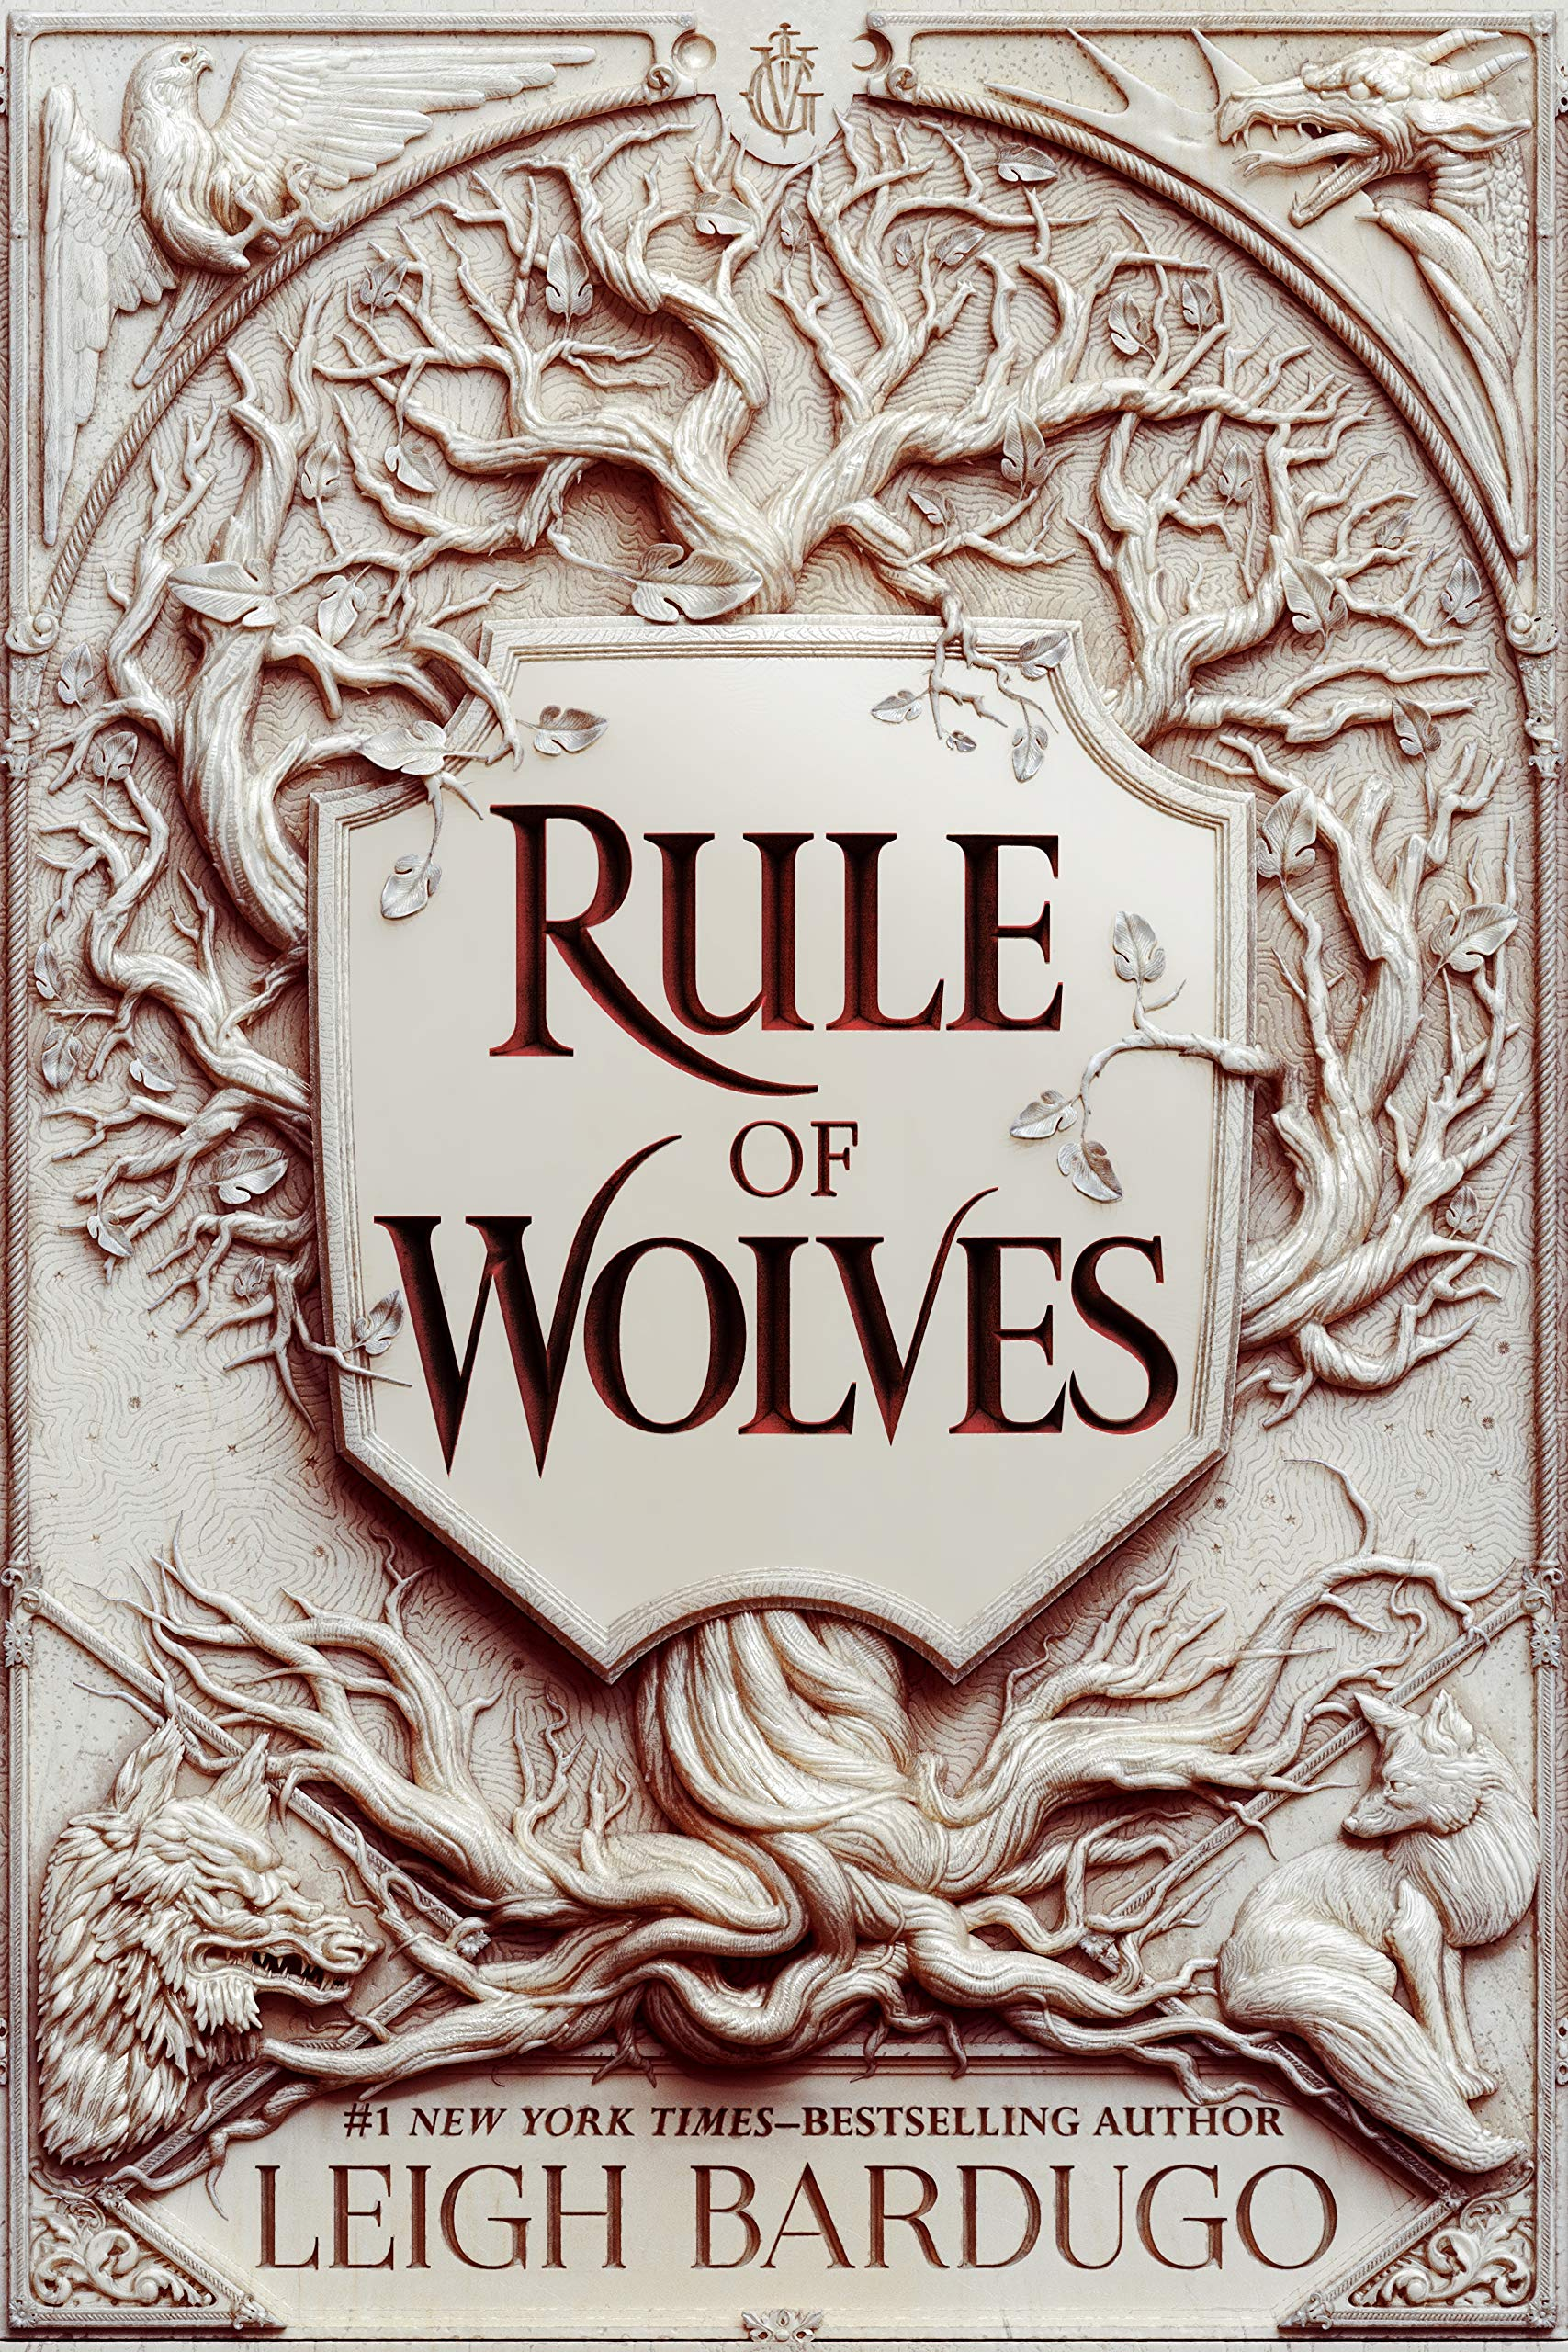 Amazon.com: Rule of Wolves (King of Scars Duology, 2) (9781250142306):  Bardugo, Leigh: Books